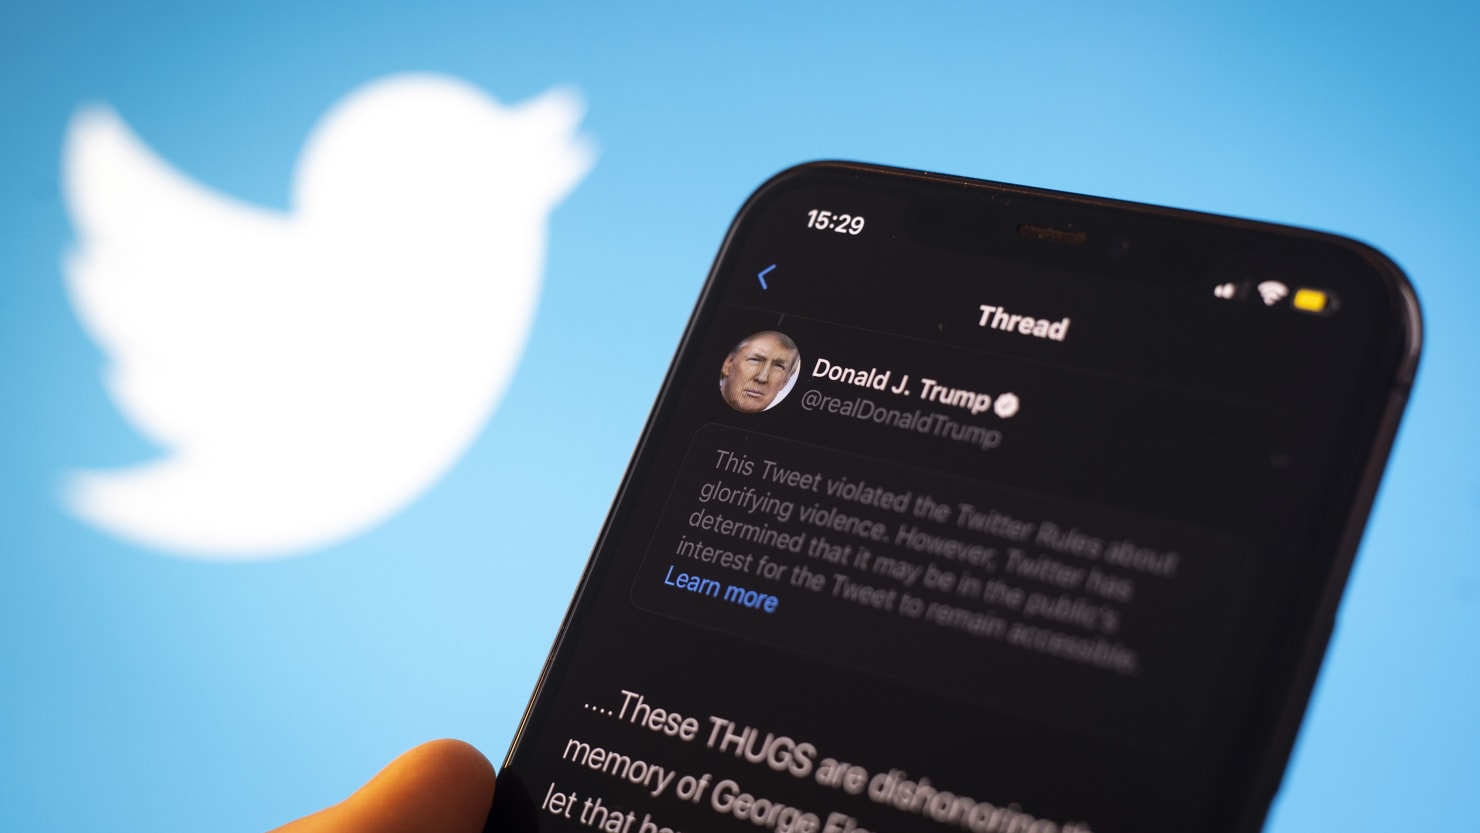 Raging Pandemic, Streets Aflame, and Donald Trump's Mad at Twitter